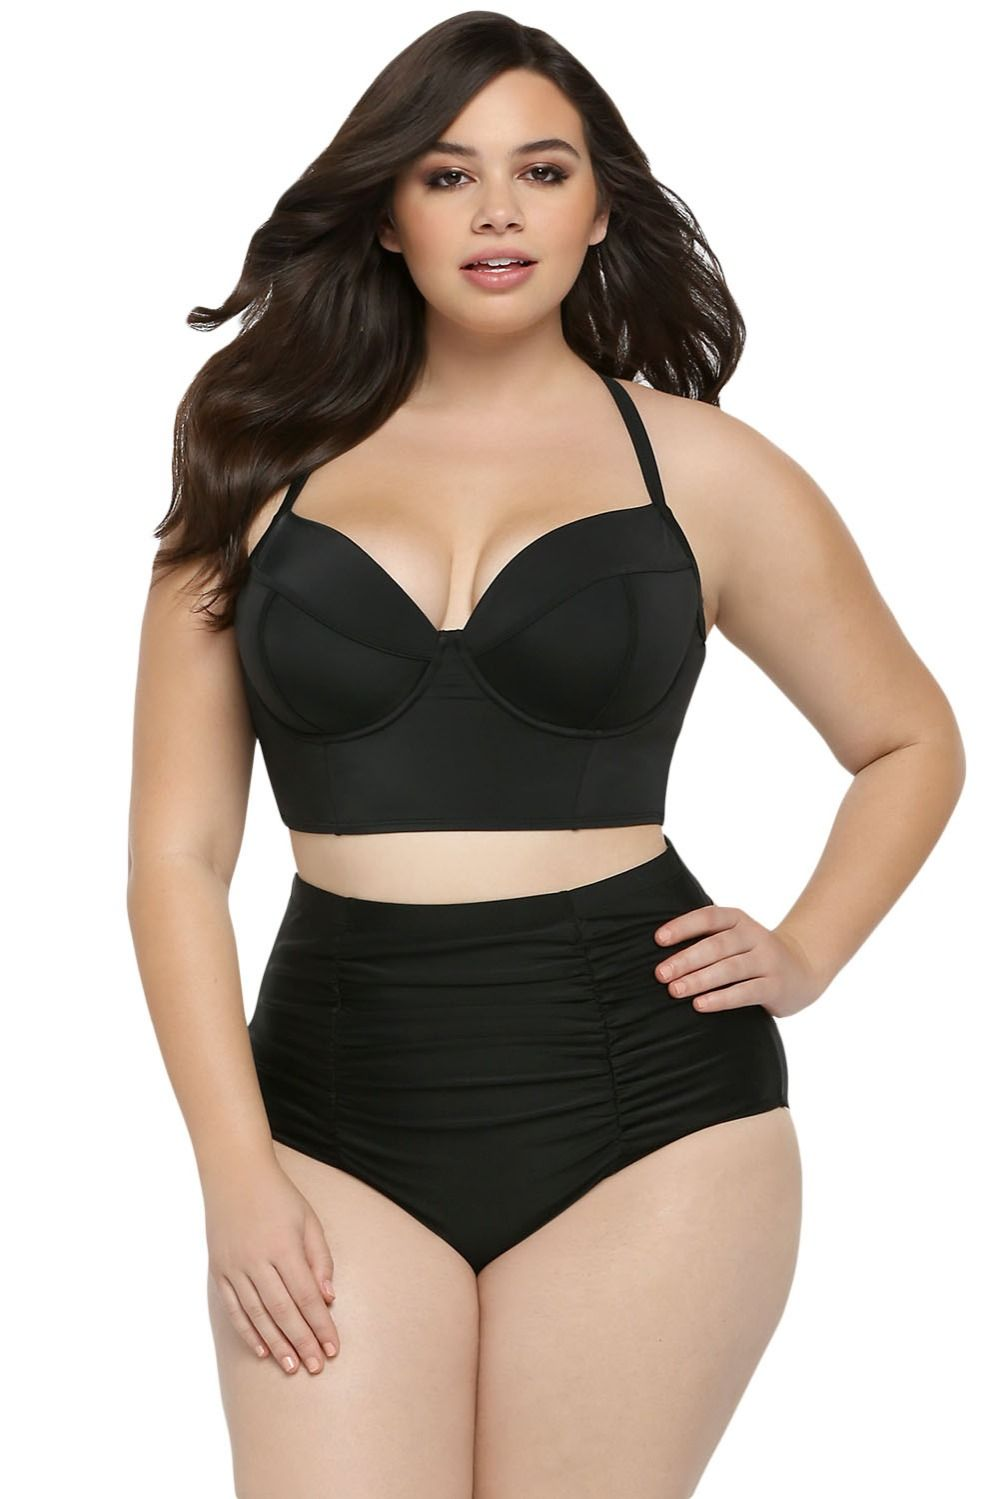 6db56341b8 Adogirl Plus Size Swimwear New Women Black Ruched Halter Bra Padded High  Waist Swimsuit Sexy Seamed Bathing Suit XL-4XL for just  20.95